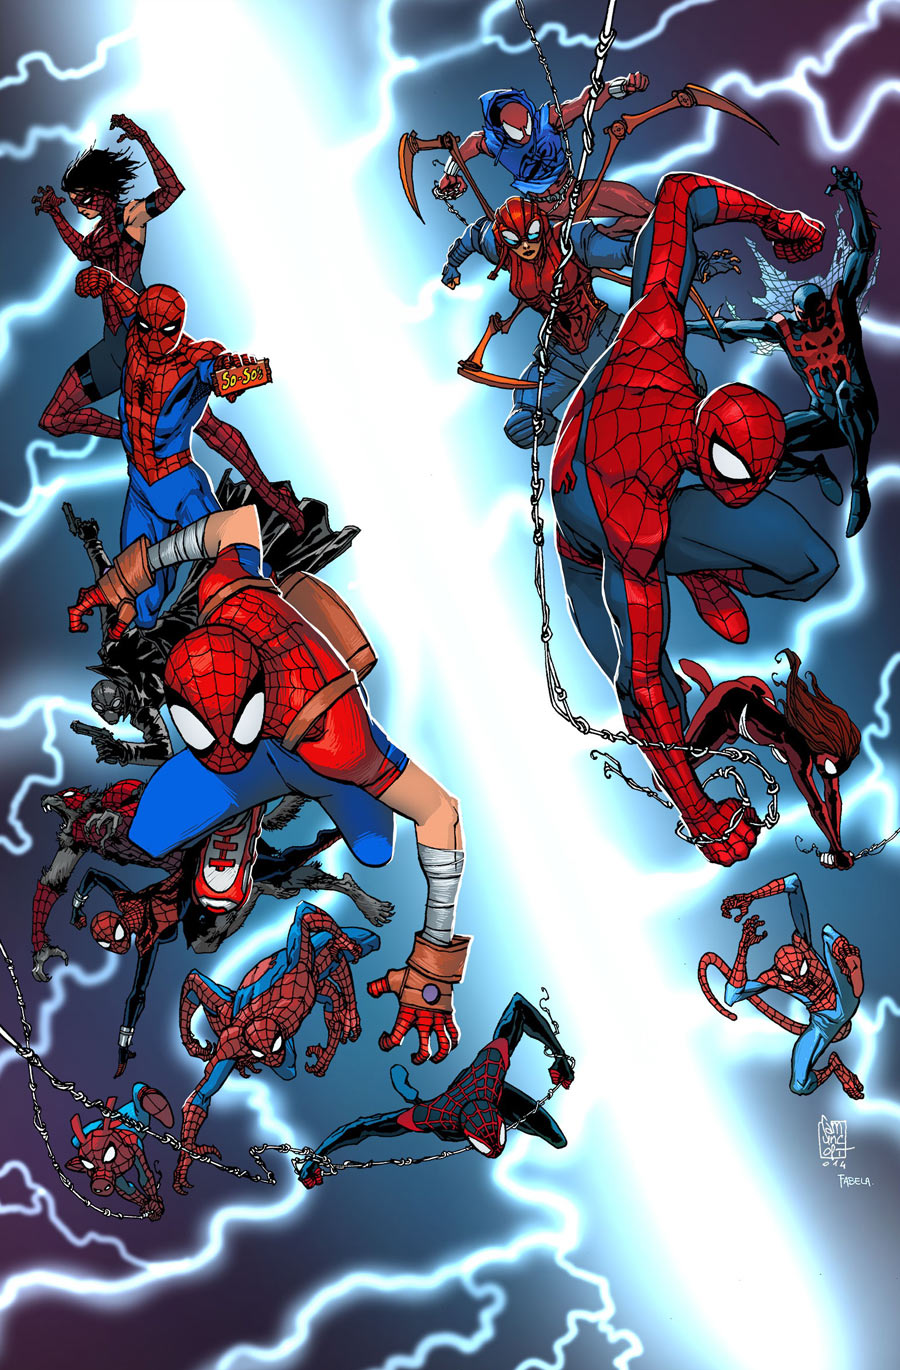 Sdcc 2014 Spider Verse Panel Annoucements Spider Man Crawlspace